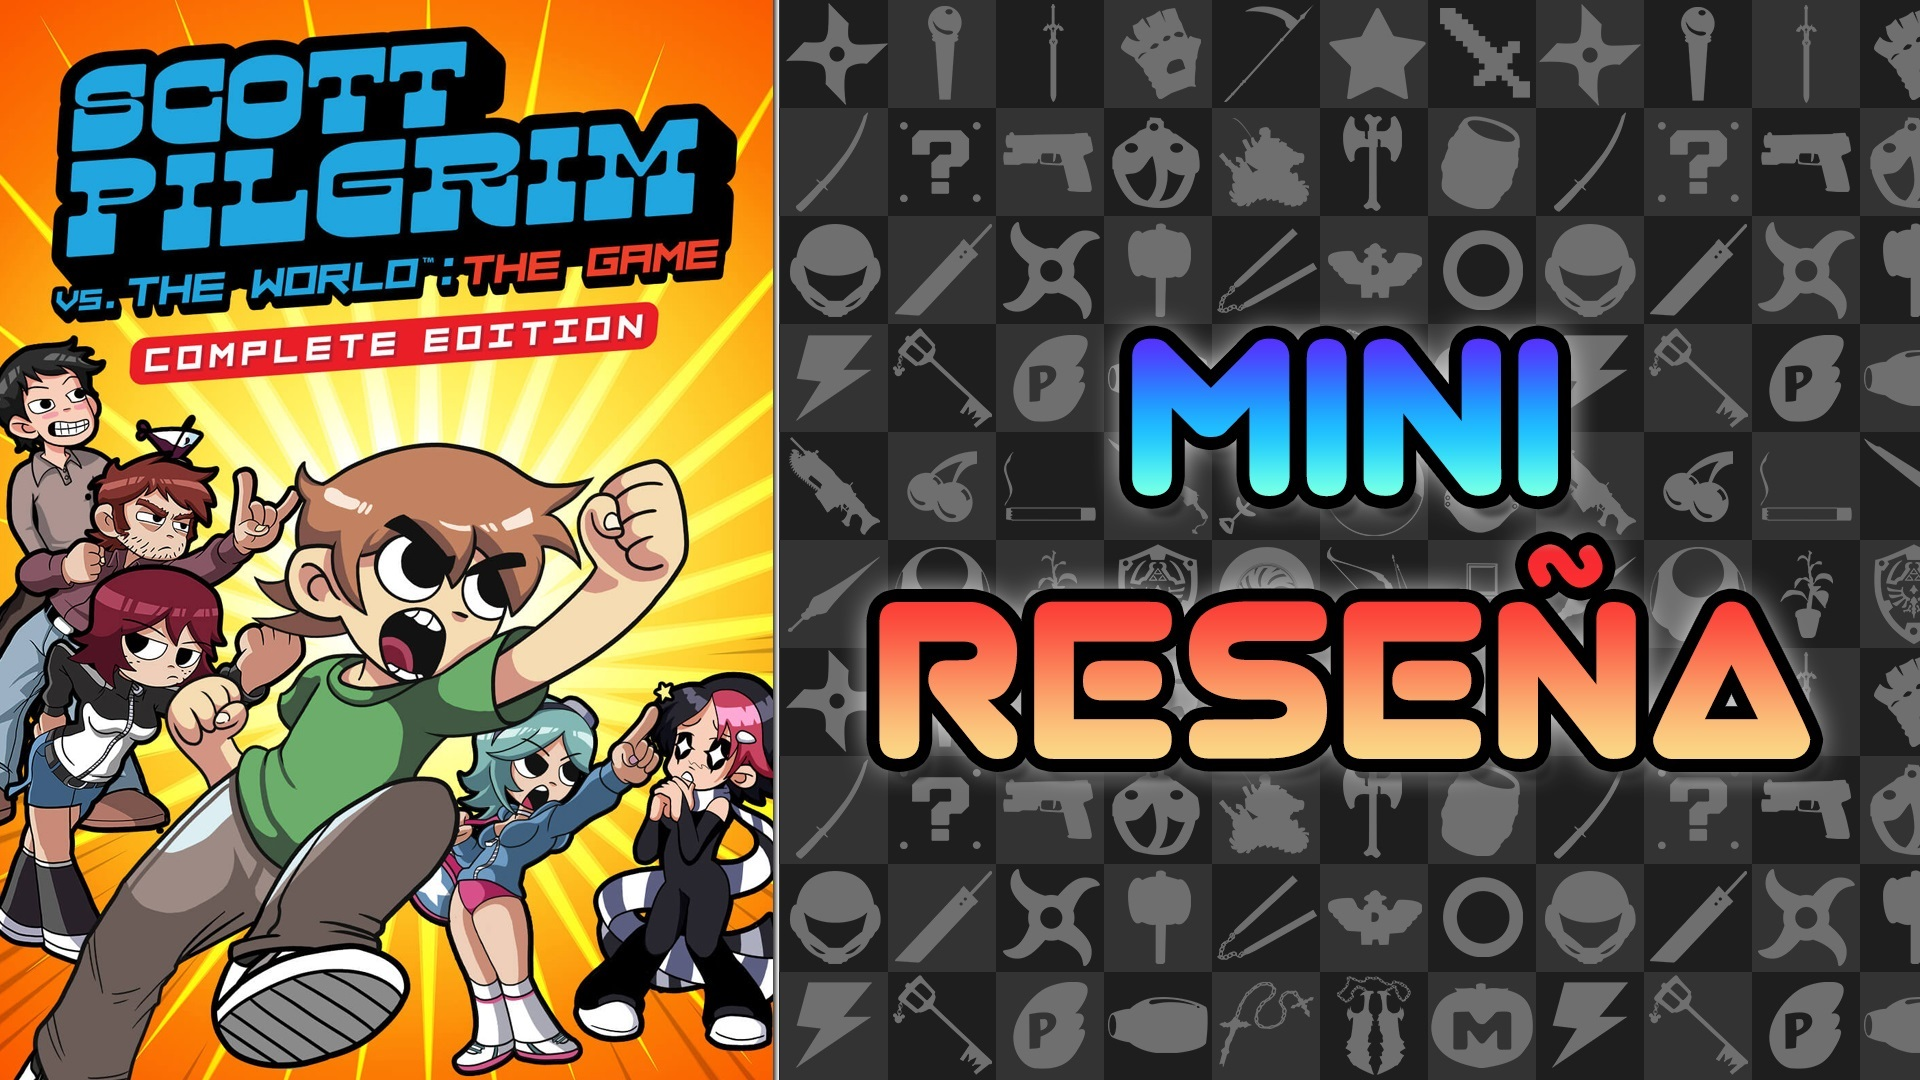 Mini Reseña Scott Pilgrim Vs. The World: The Game Complete Edition